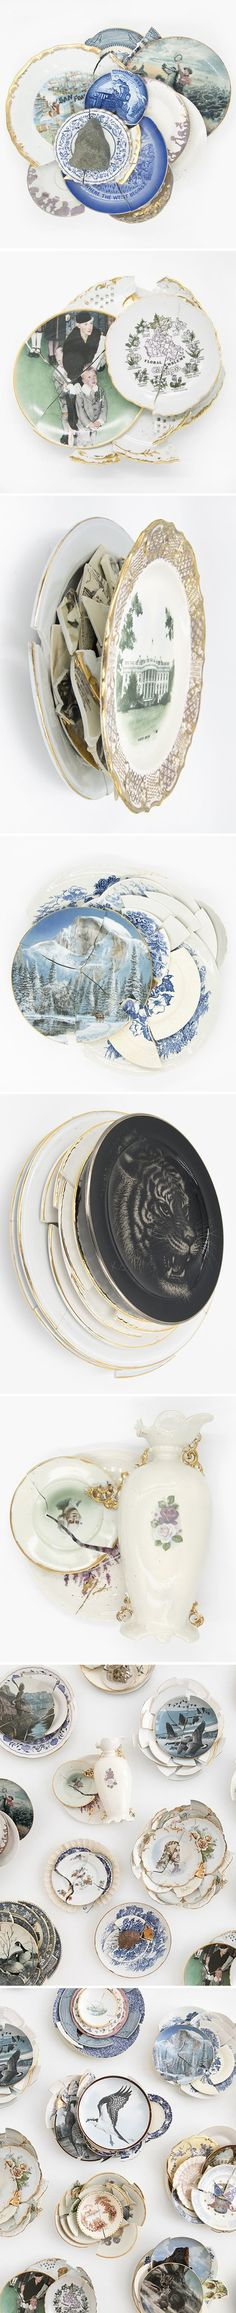 The Jealous Curator curated contemporary art  | jeremiah jenkins ceramic collages